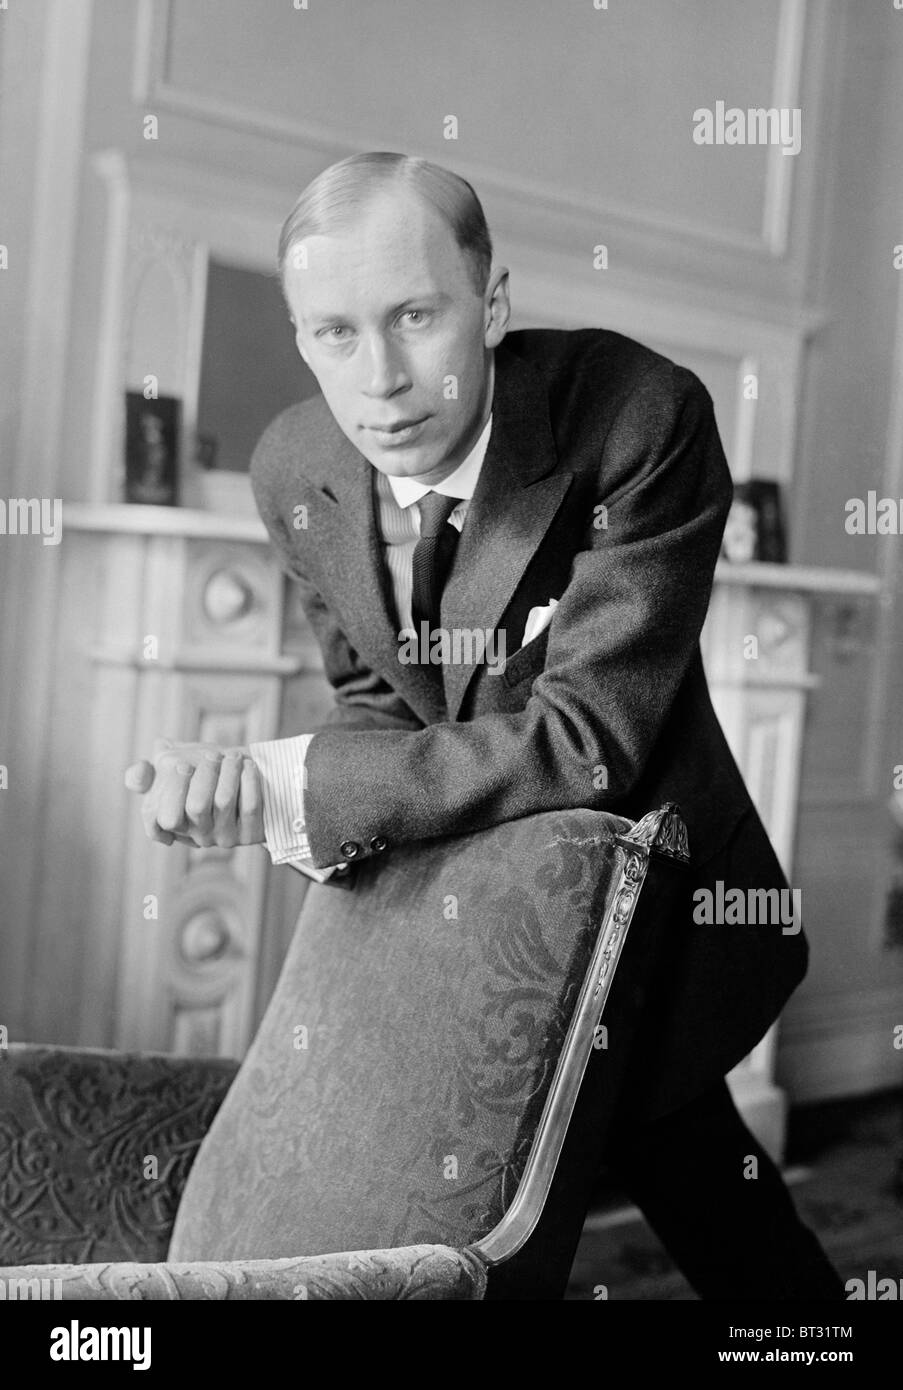 Portrait photo circa 1918 of Russian composer, pianist and conductor Sergei Prokofiev (1891 - 1953). - Stock Image